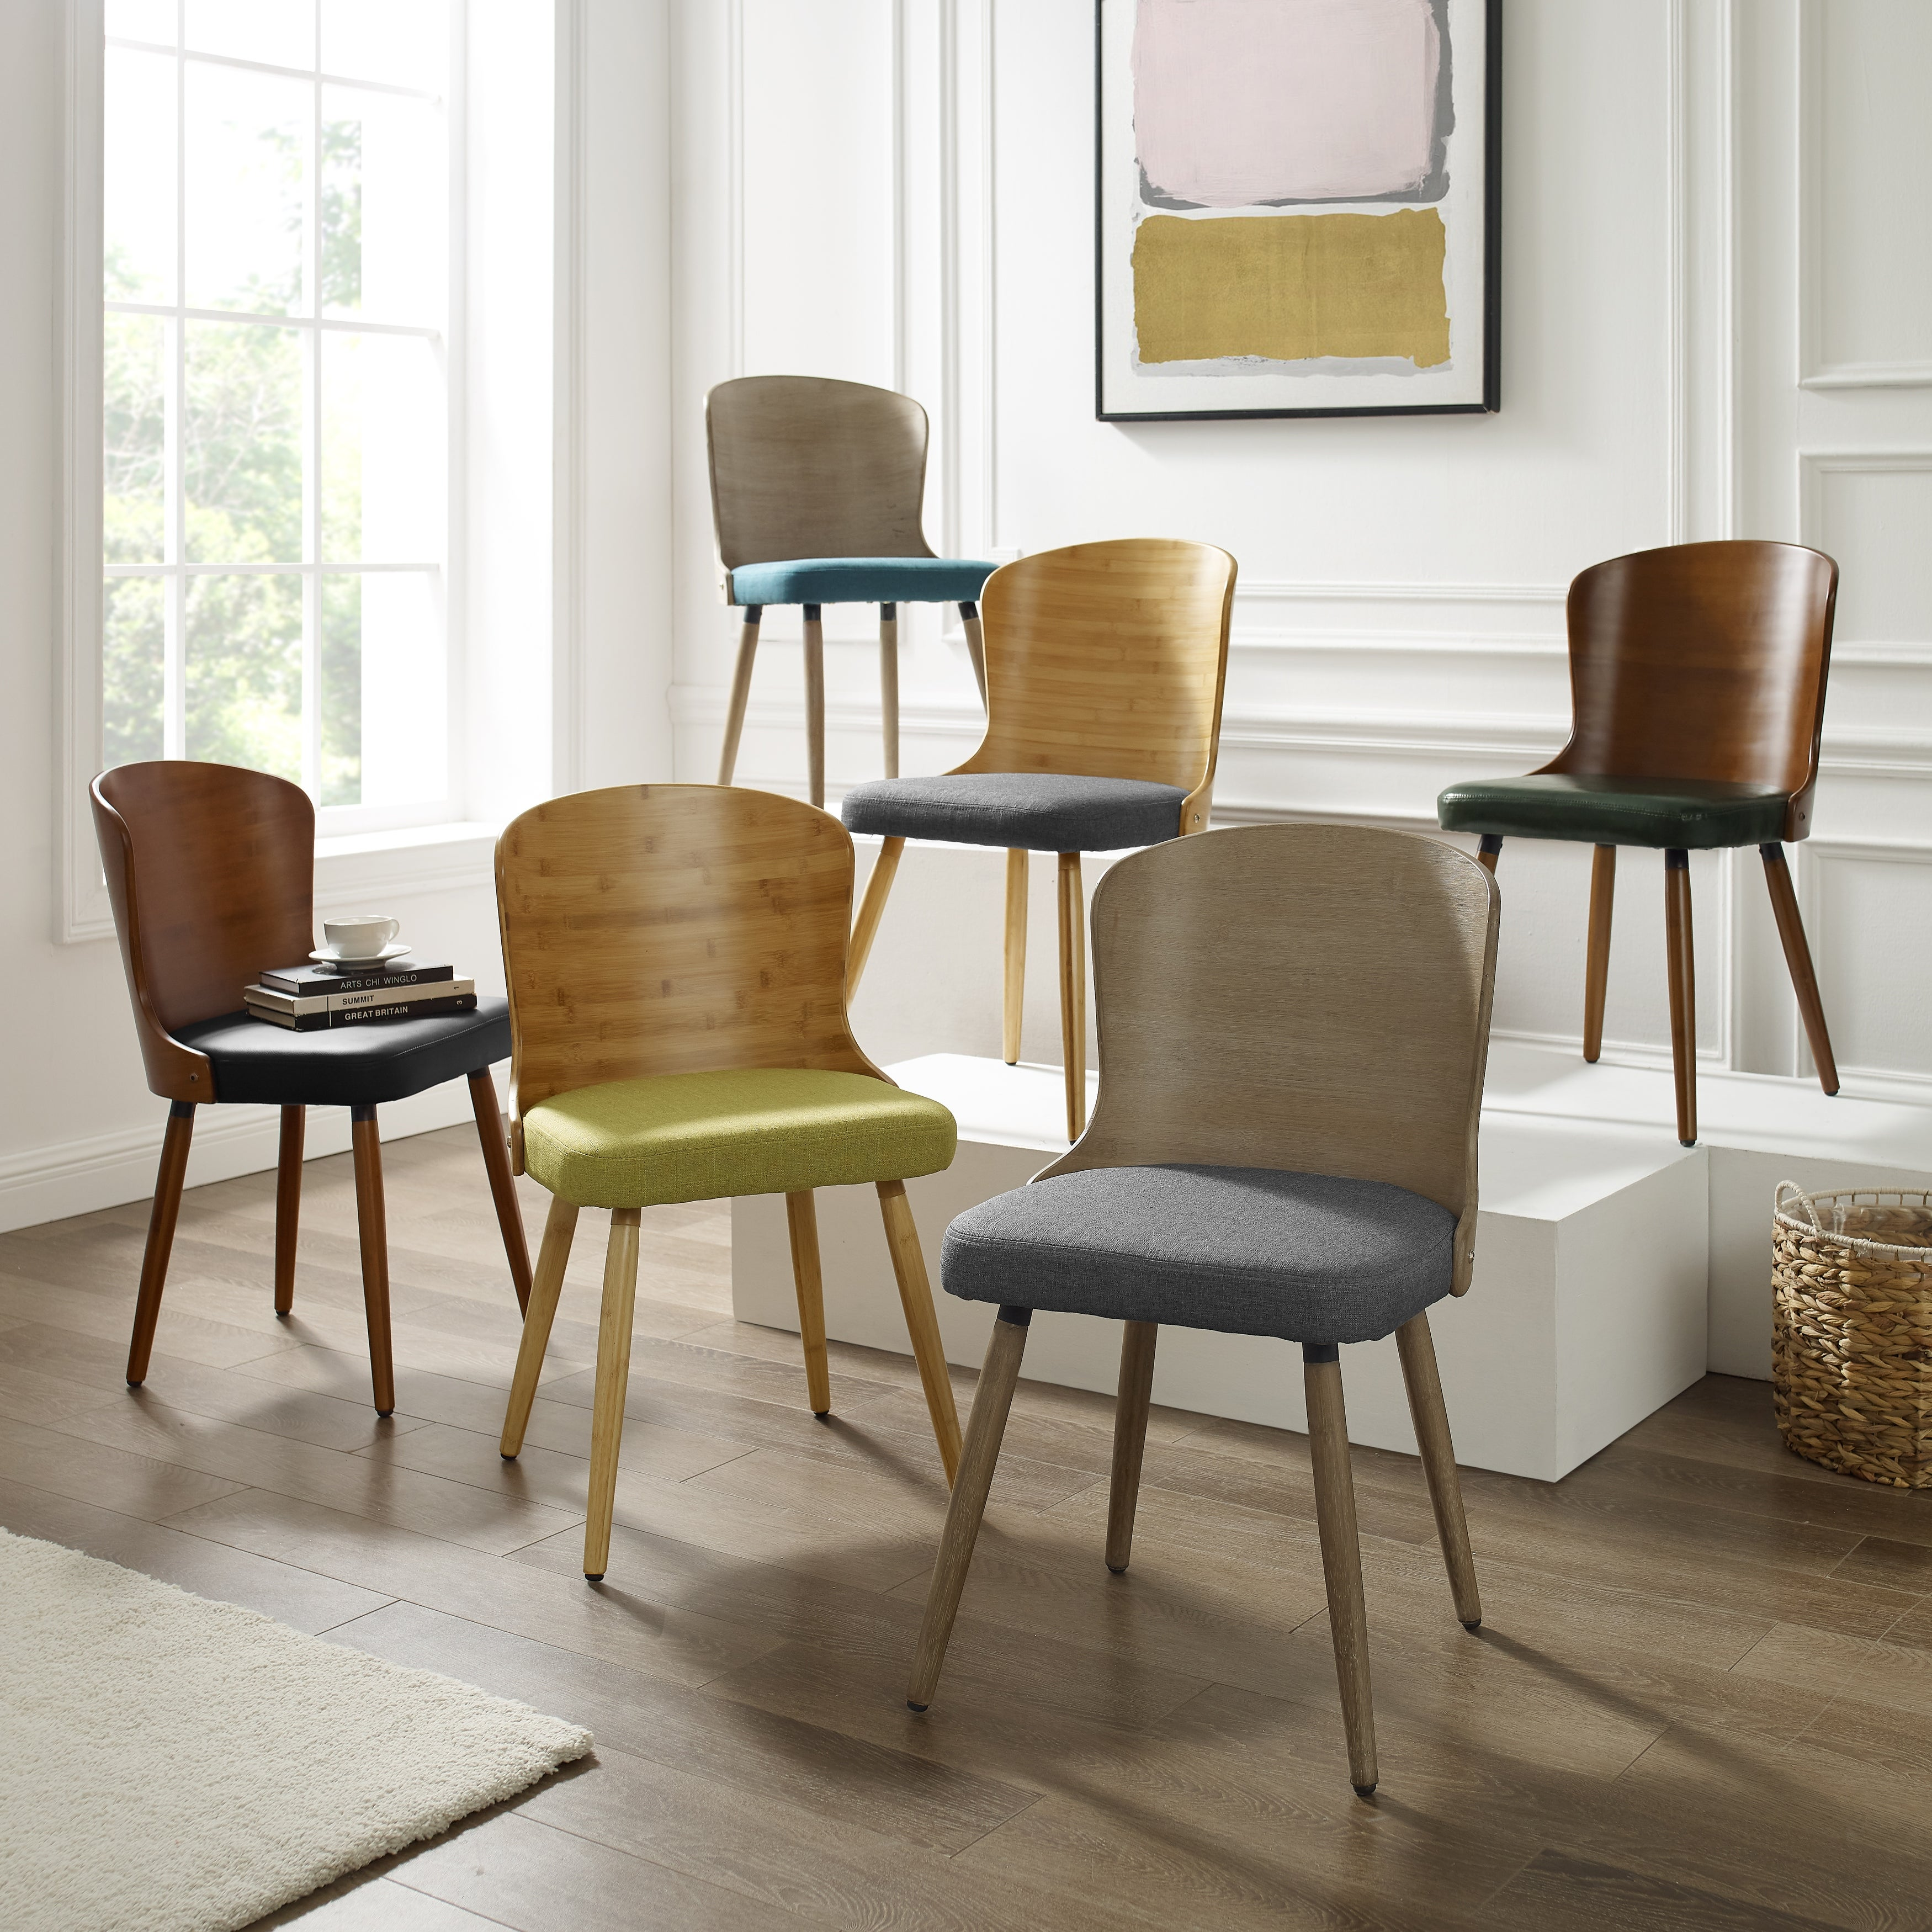 Picture of: Corvus Calvados Mid Century Modern Dining Chairs Set Of 2 For Sale Online